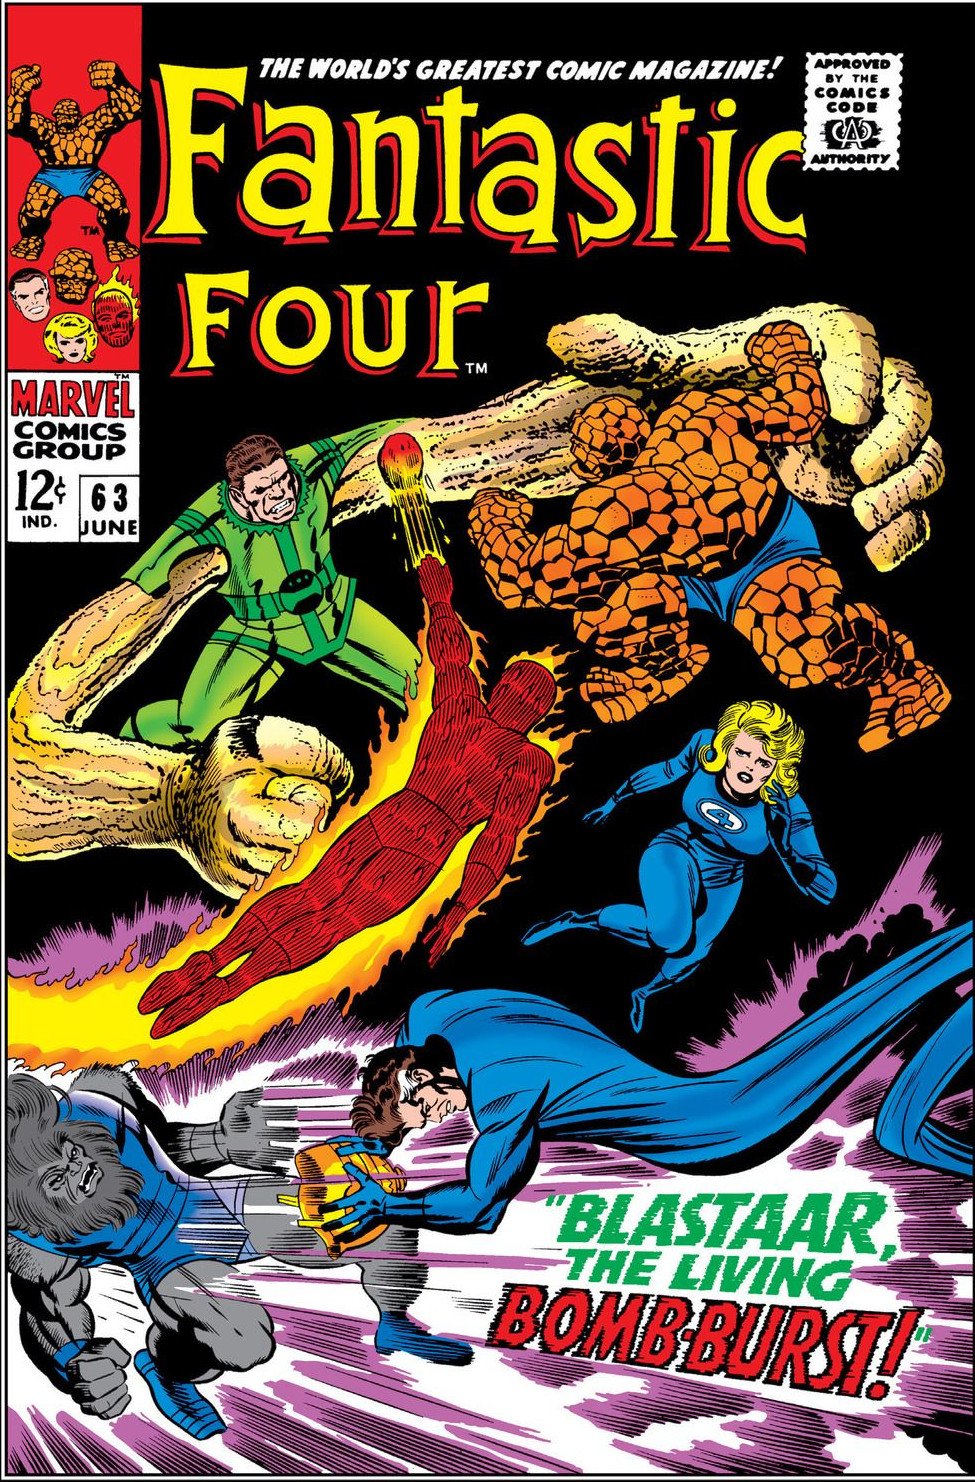 Fantastic Four Vol 1 63